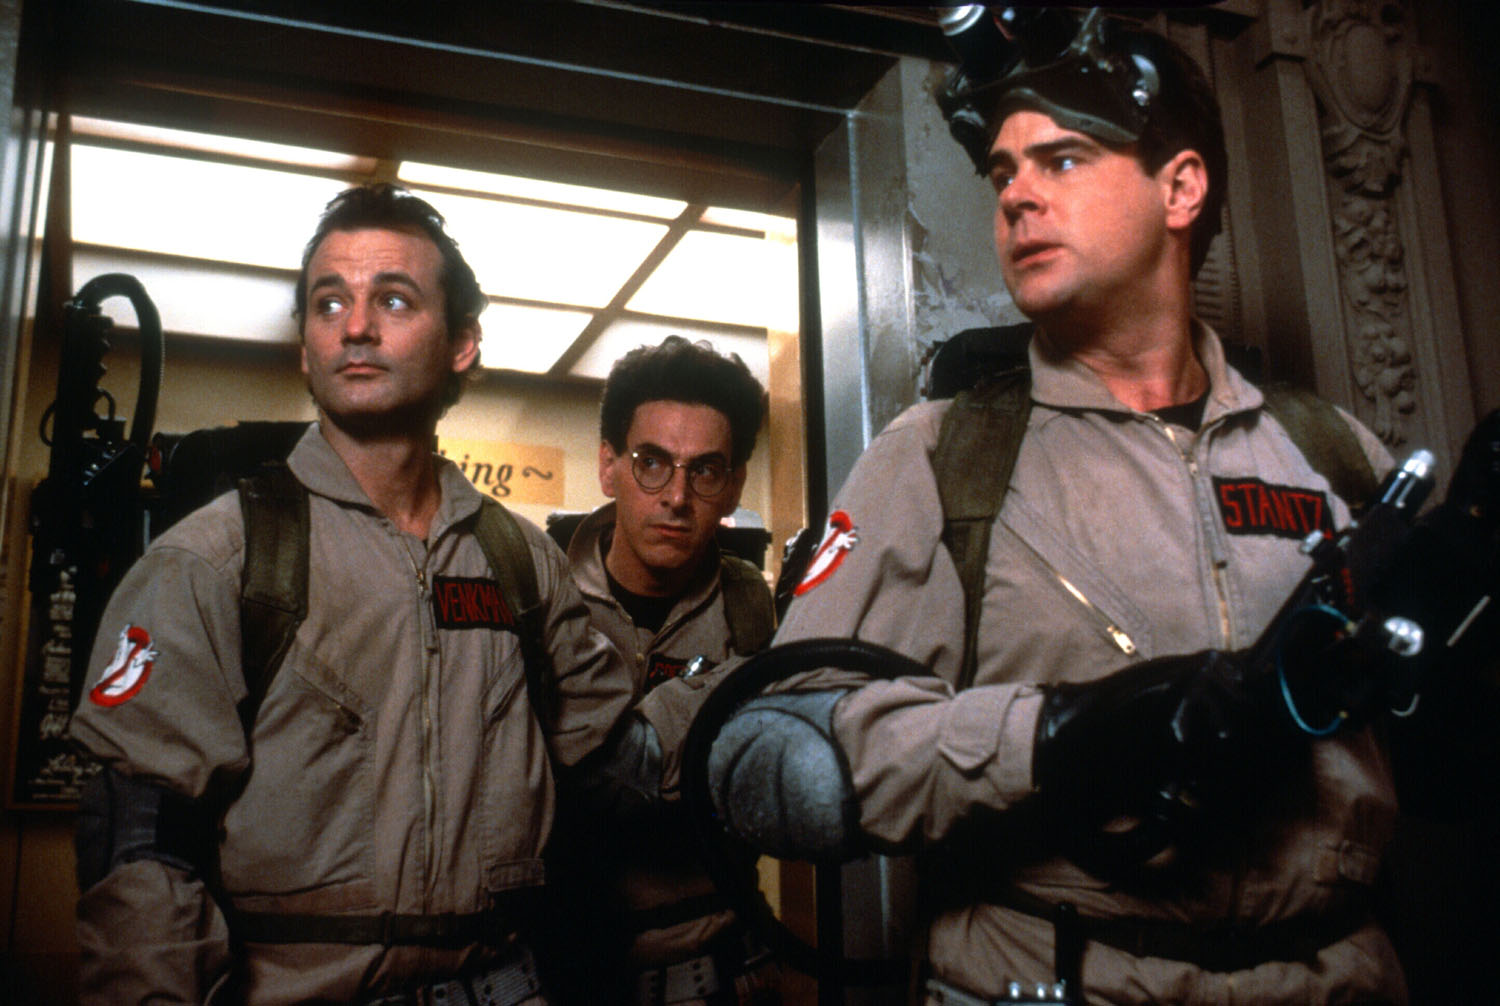 The Ghostbusters